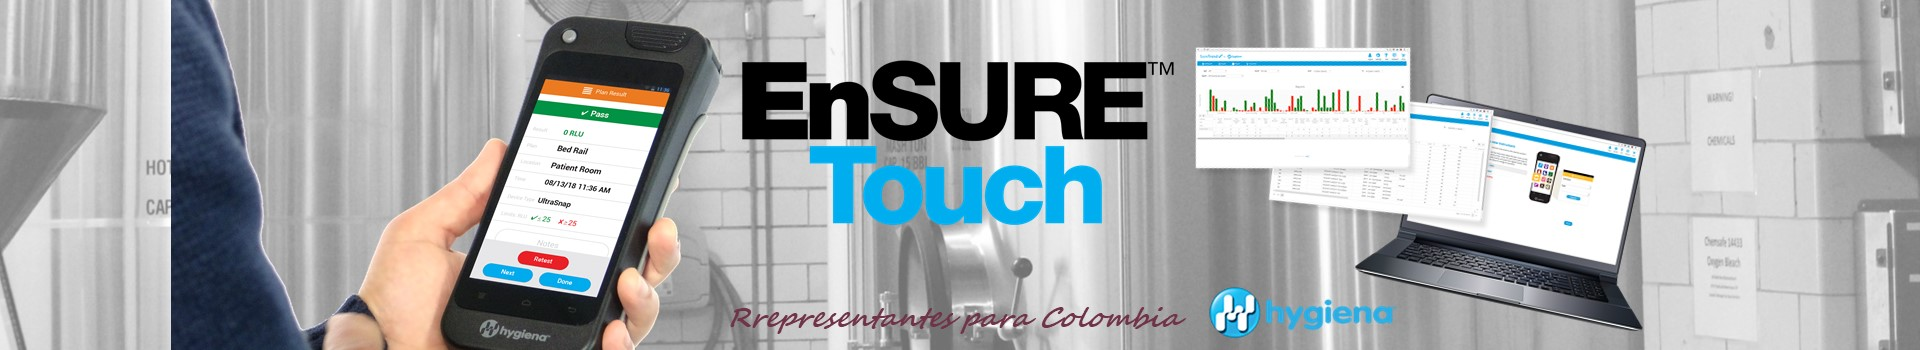 LUMINOMETRIA ENSURE TOUCH HYGIENA COLOMBIA MIURAS